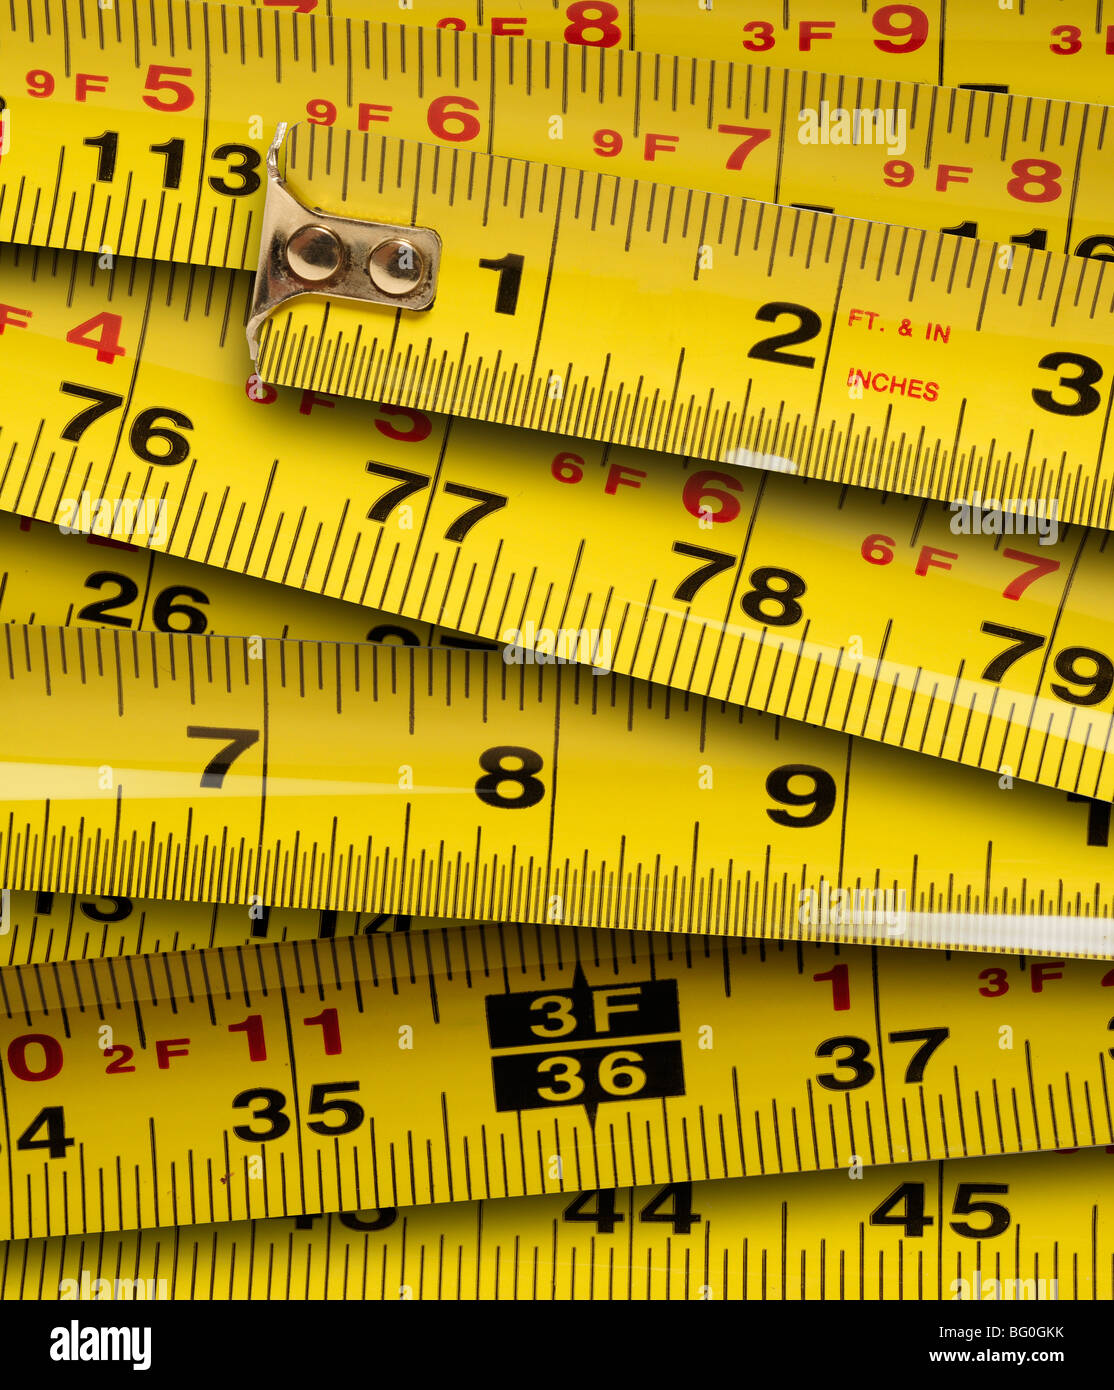 Close up of metal yellow measuring tapes - Stock Image